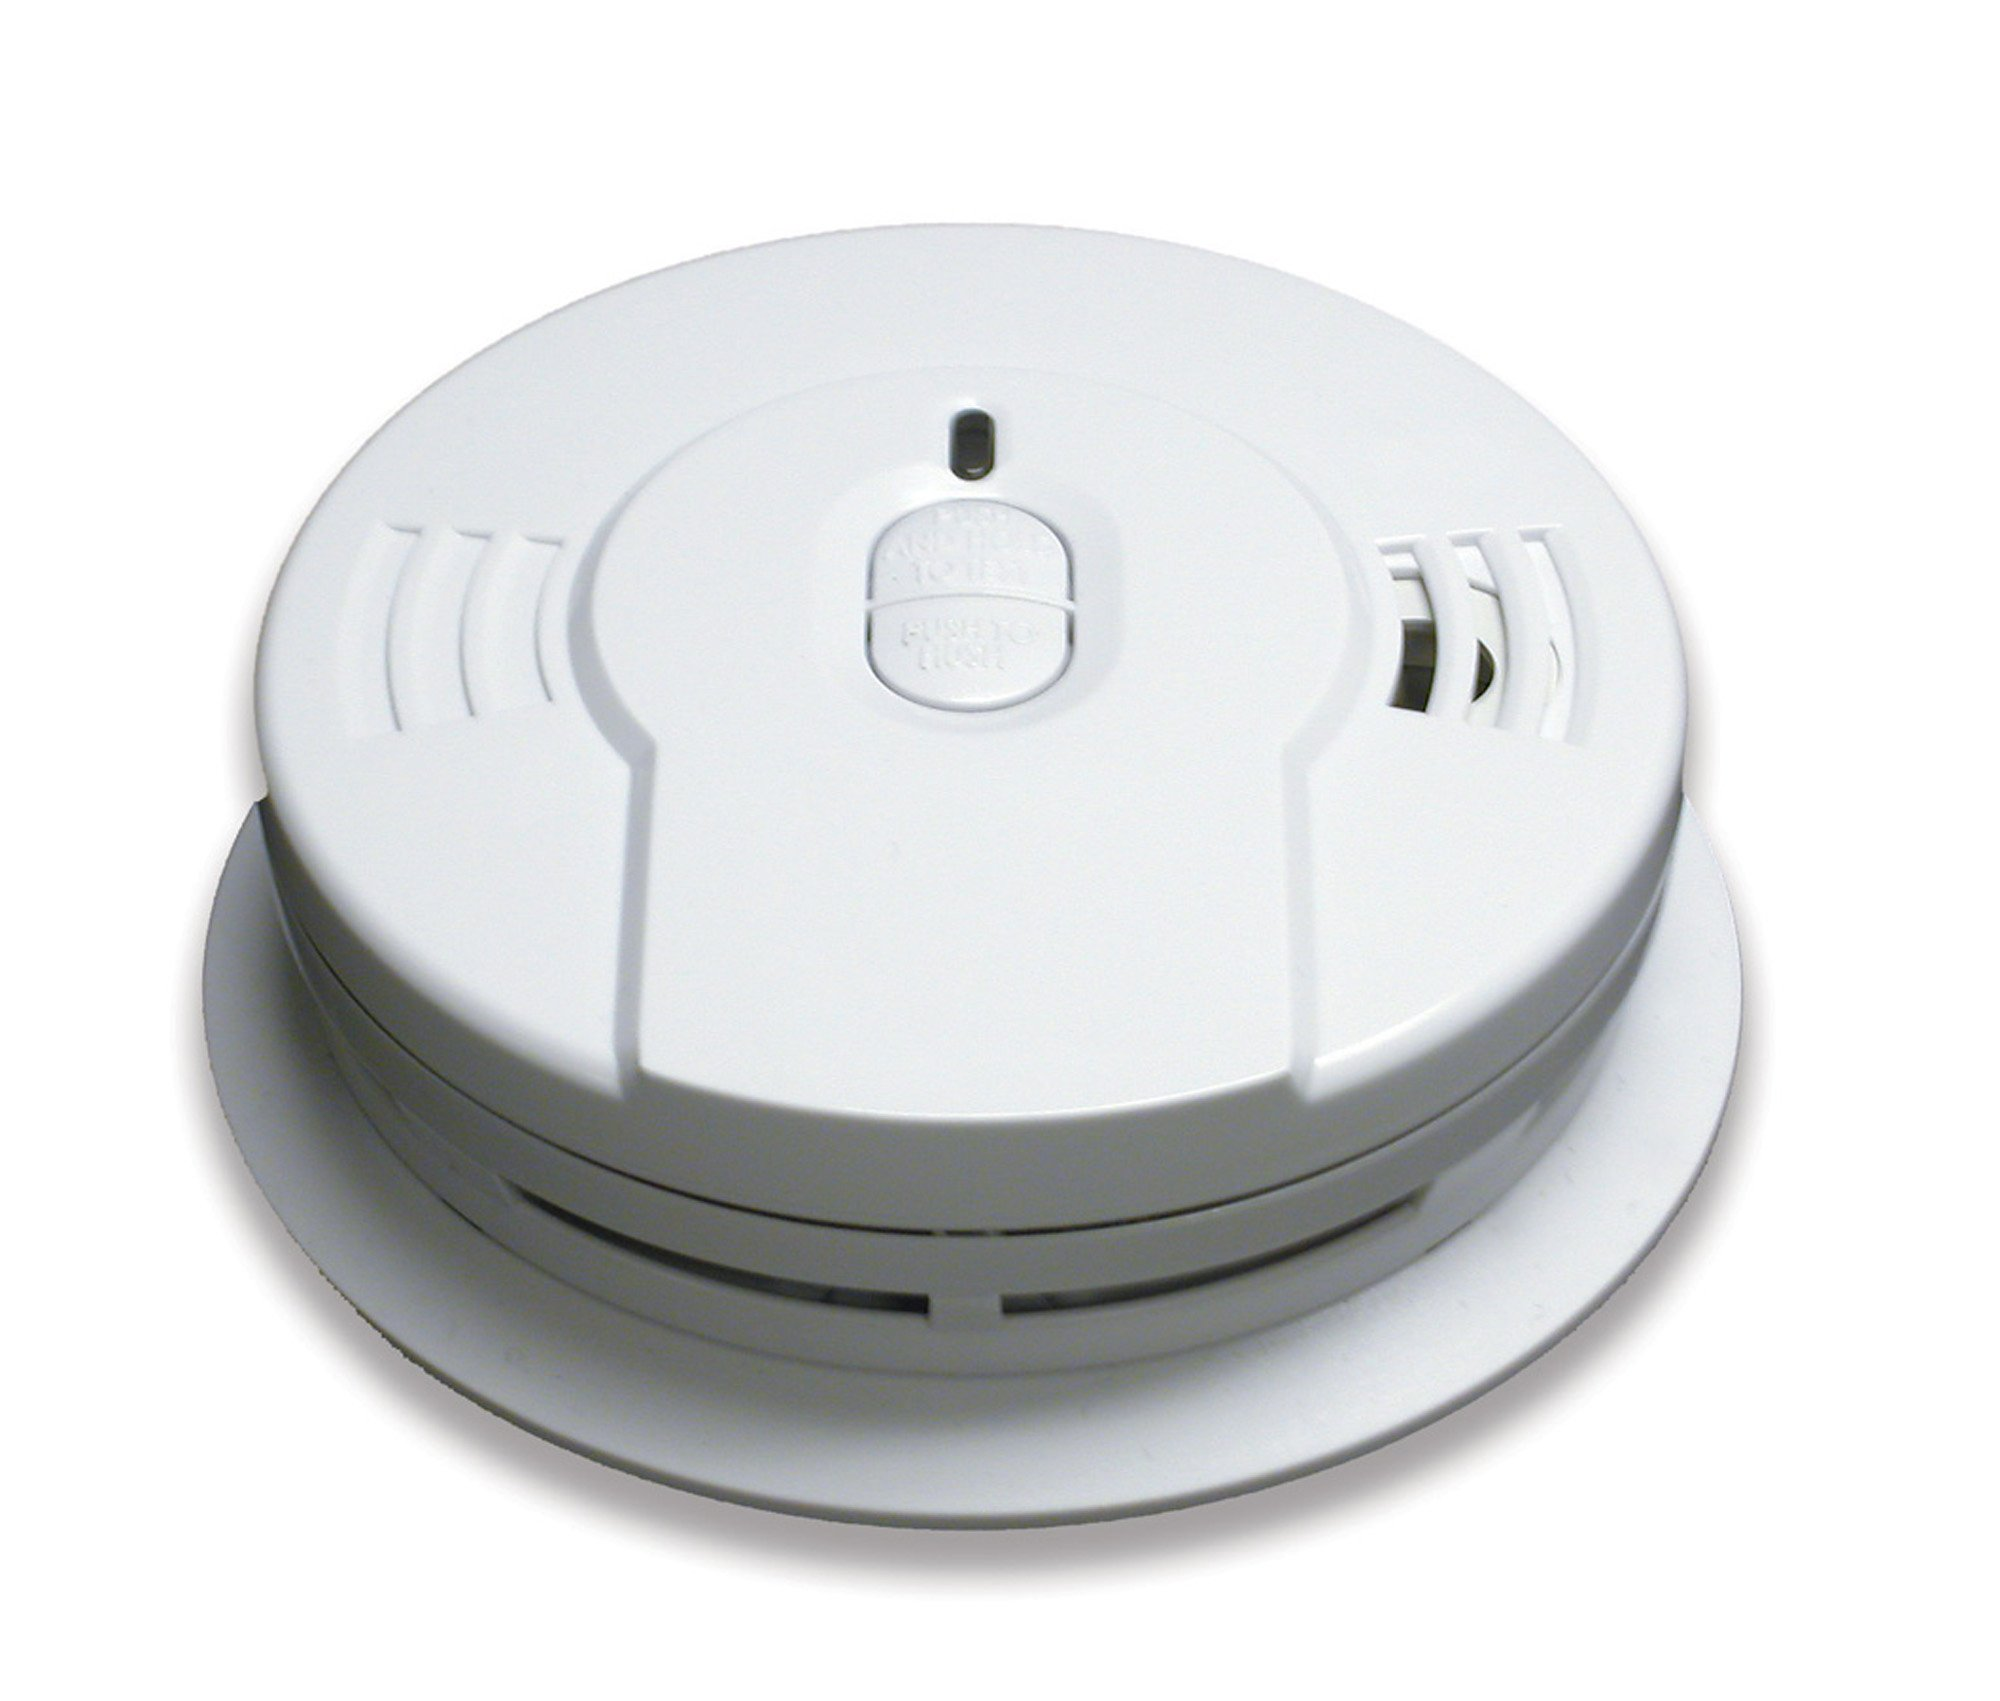 Kidde Sealed Lithium Battery Power Smoke Detector Alarm | Model i9010 by Kidde